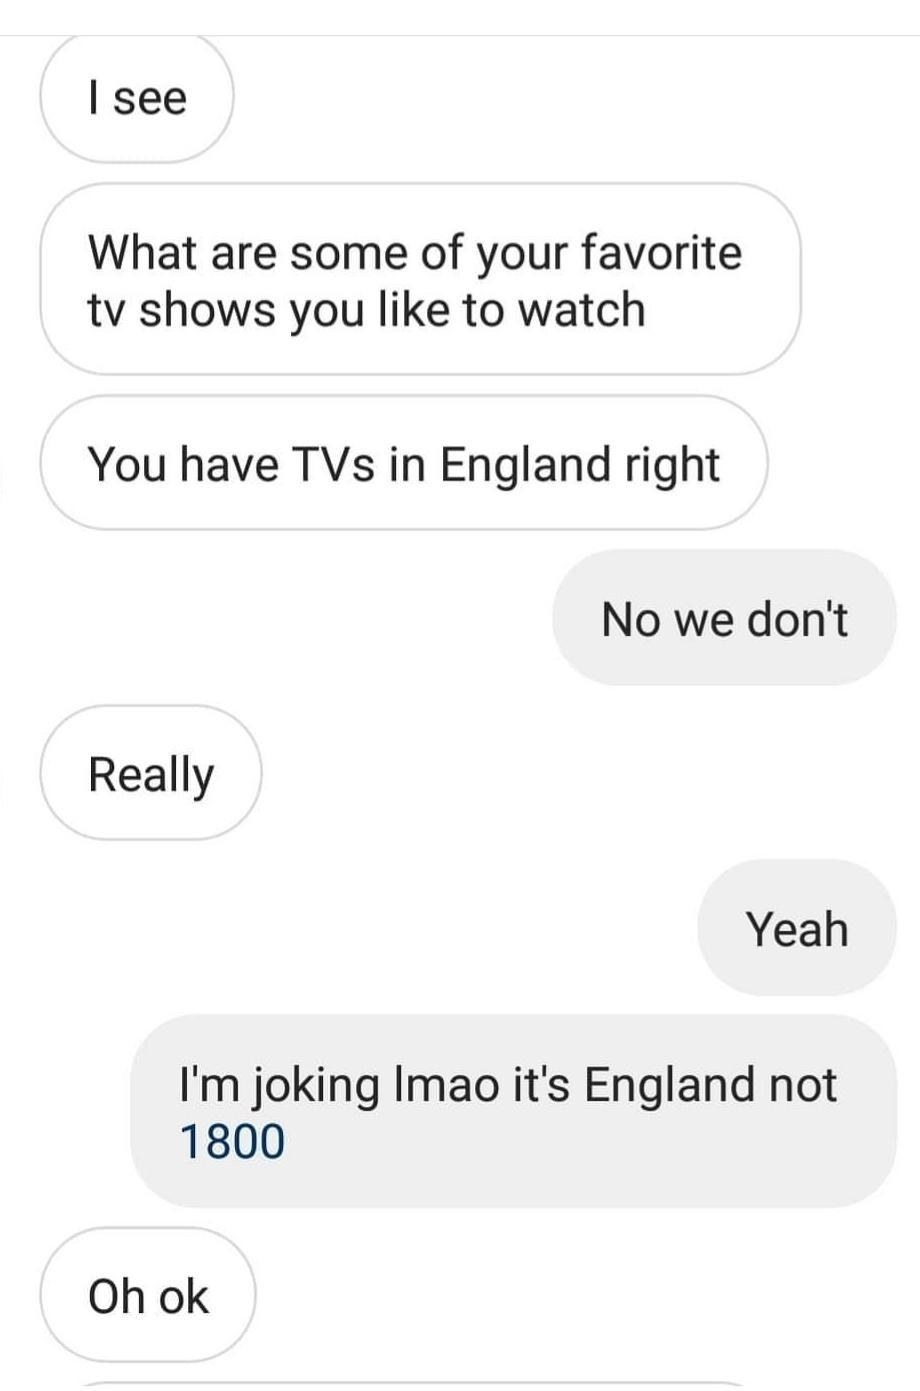 person who asks if people in england have TVs